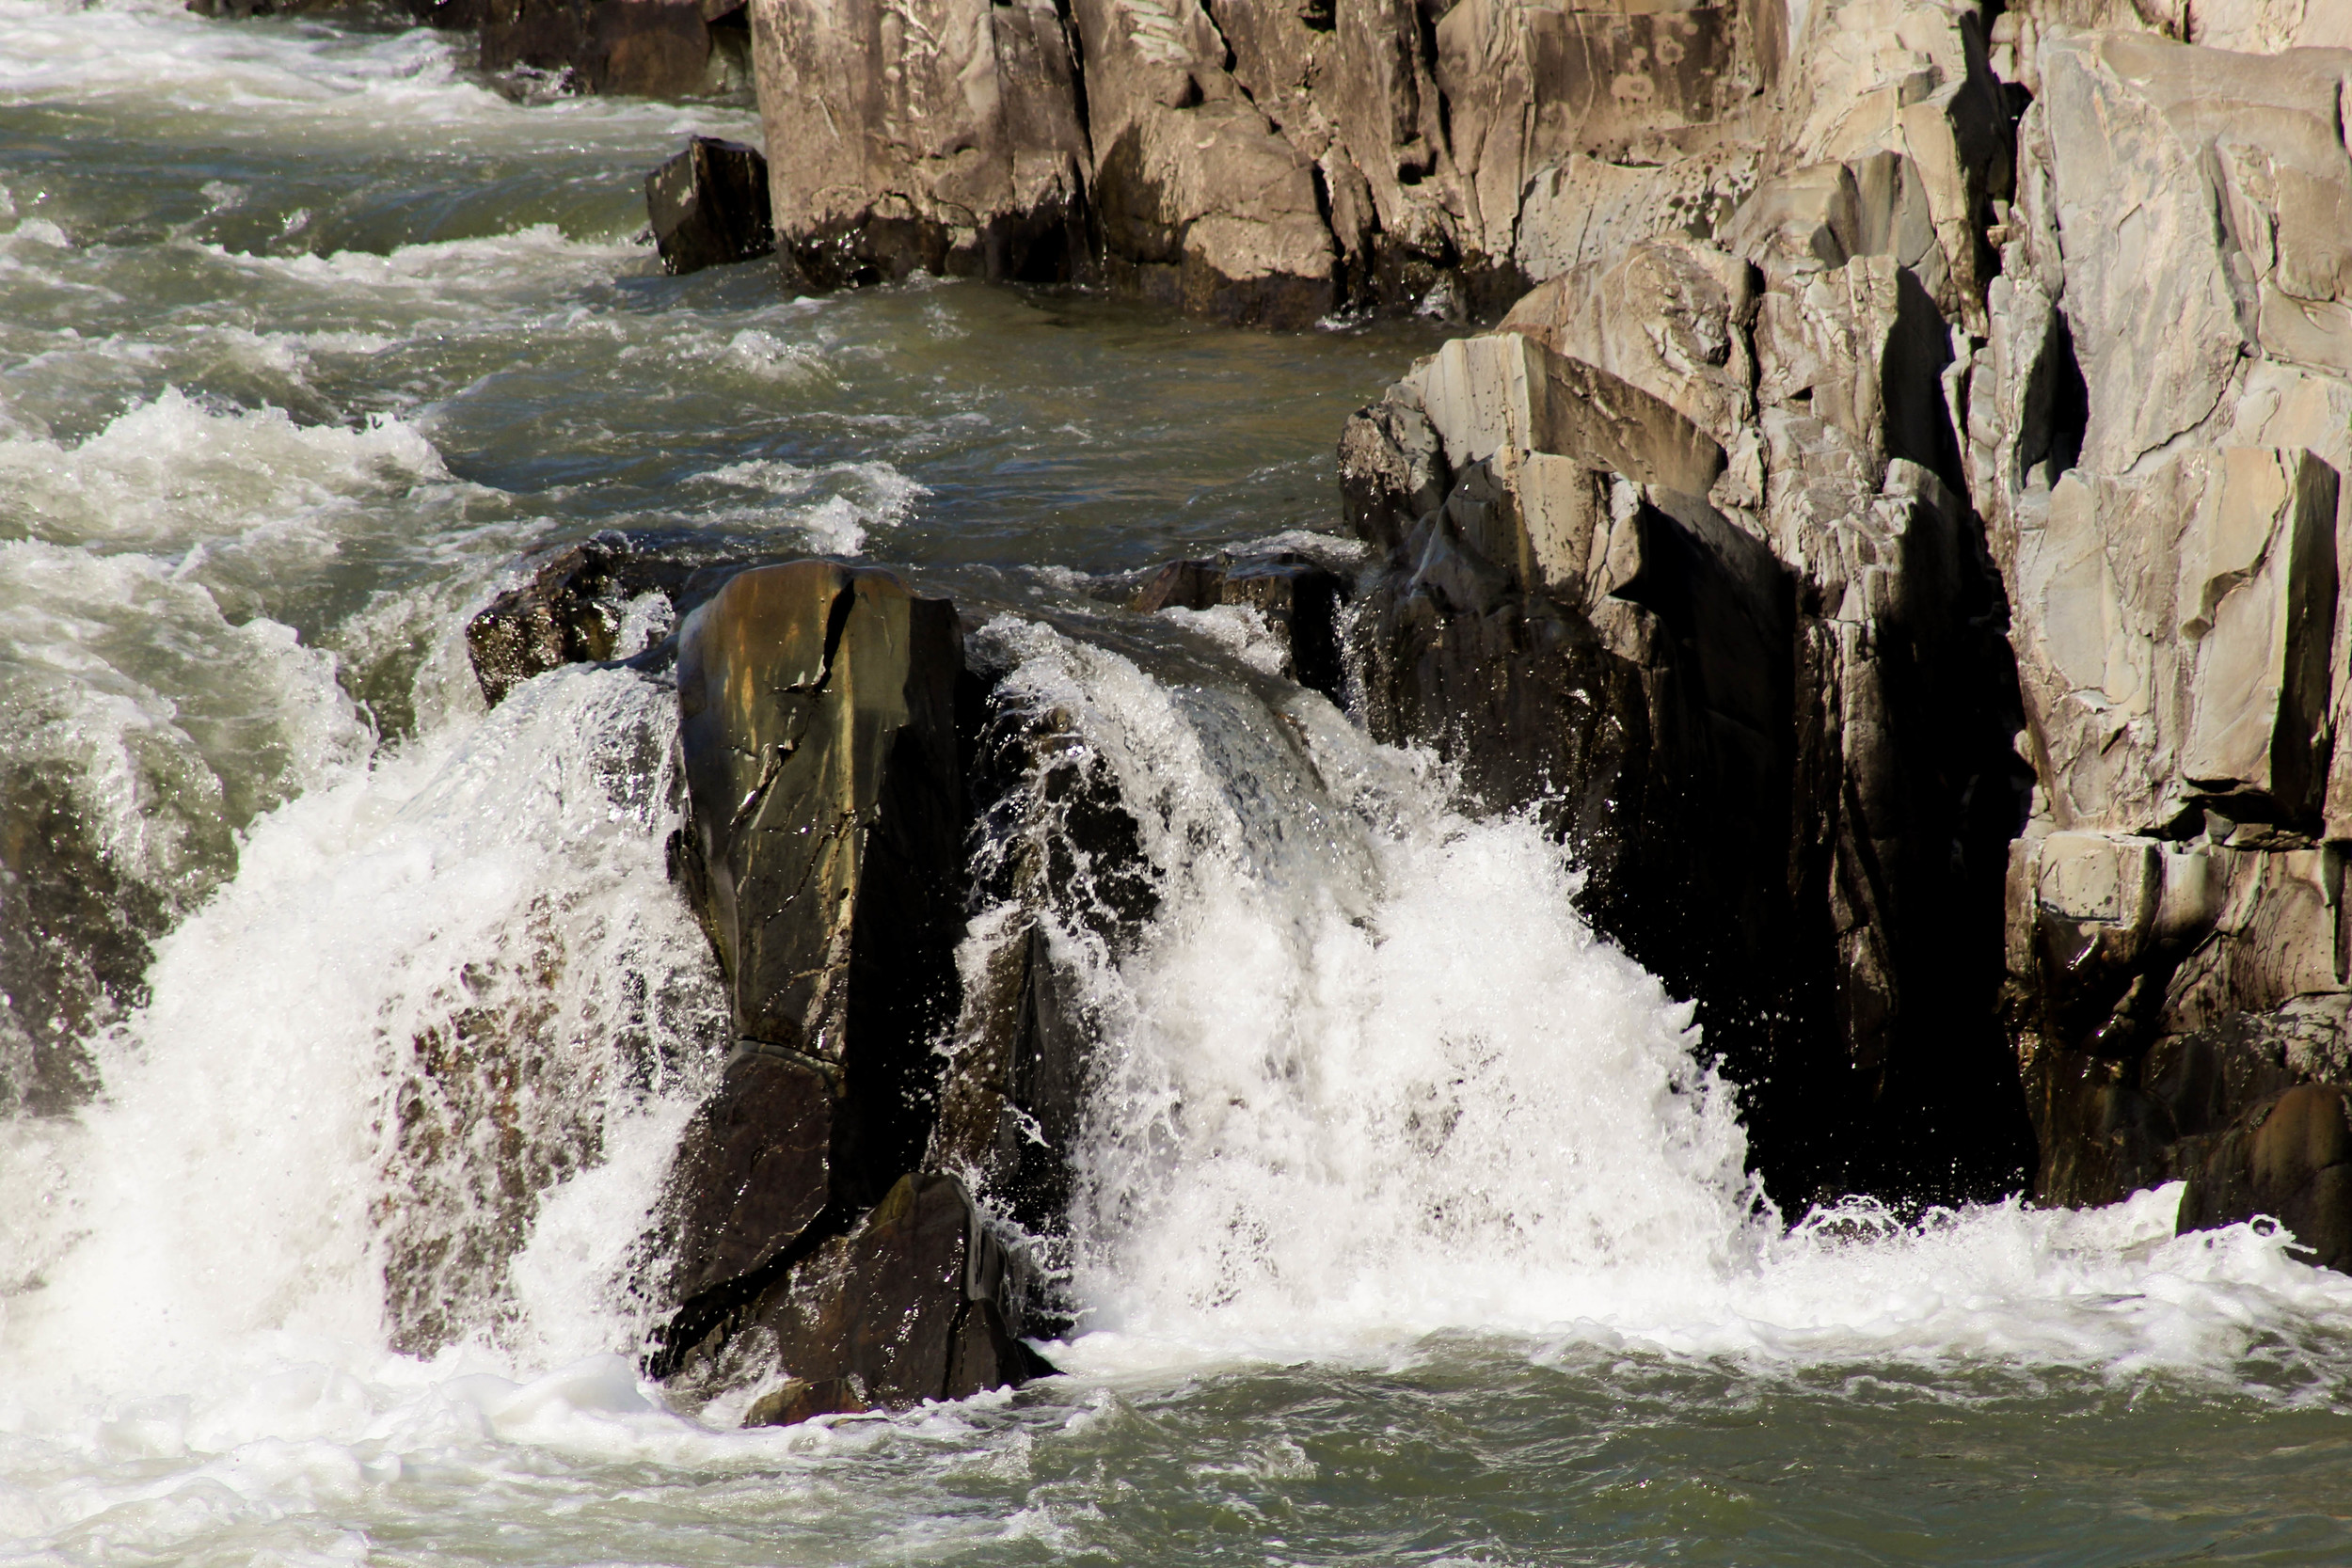 On a hot day, you might be tempted to jump into the river at Great Falls, even though it's technically illegal. But taking a nap on the rocks definitely isn't.